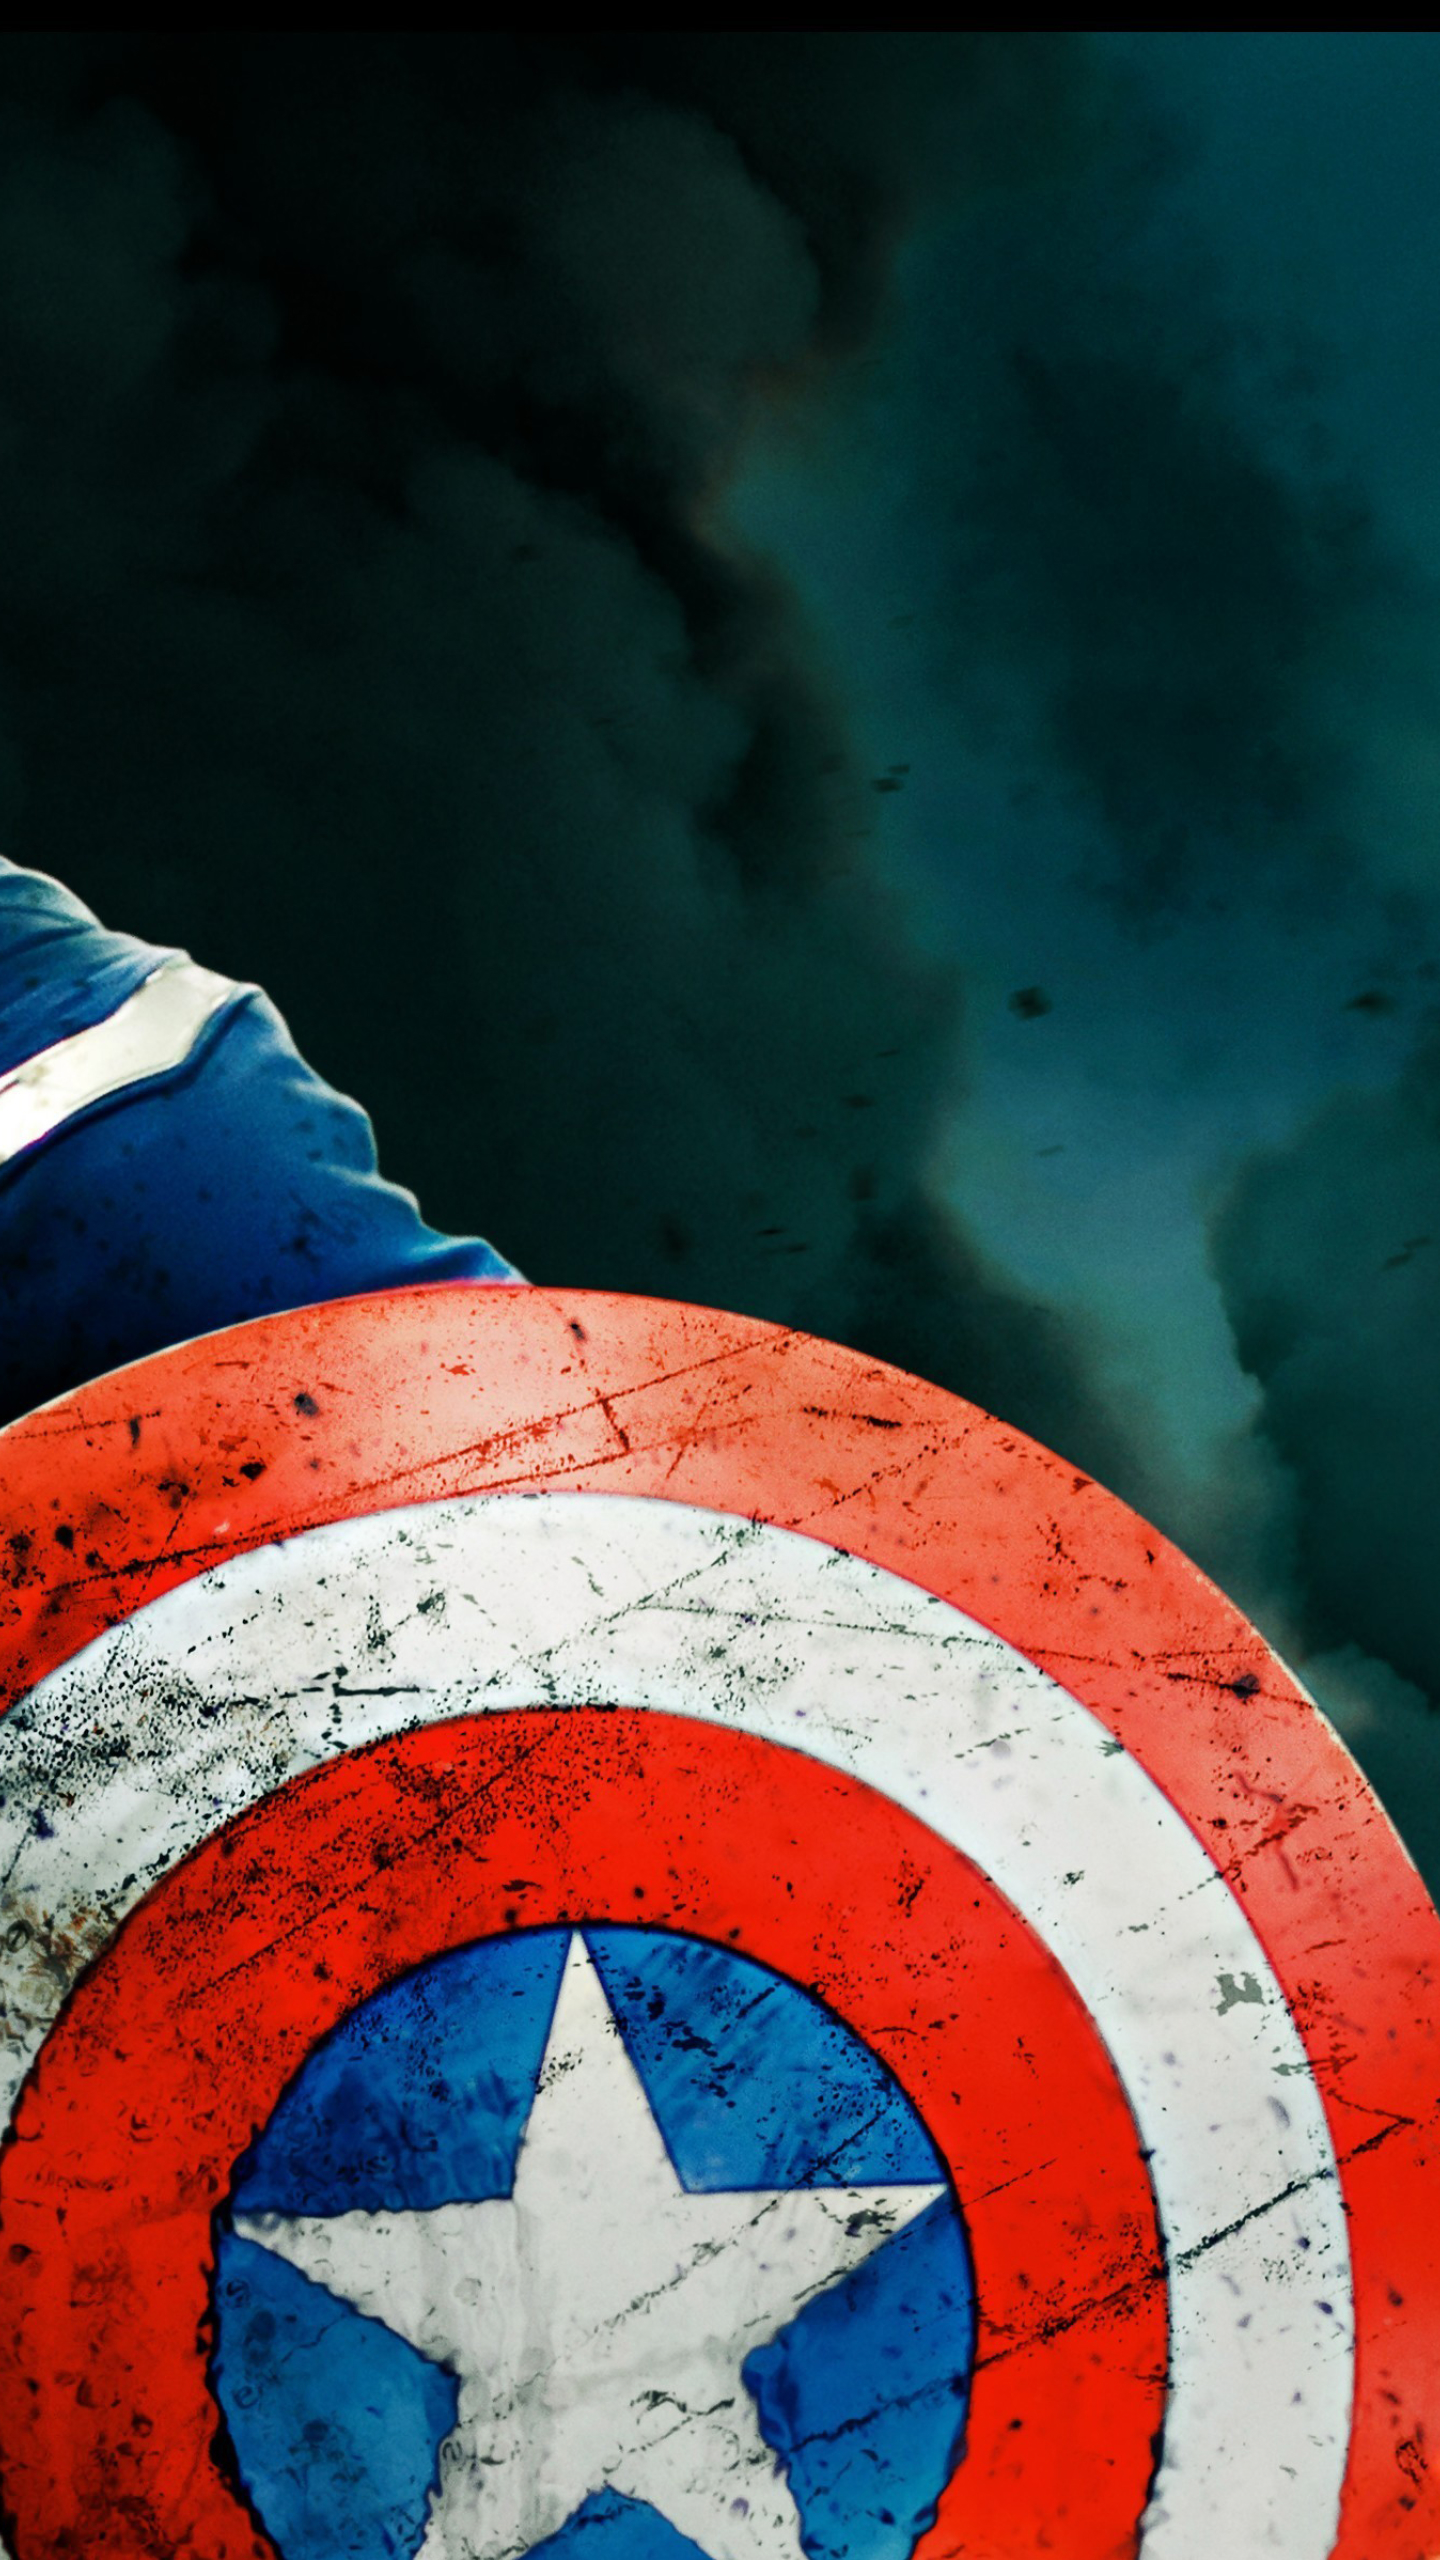 Captain america photoshoot hd 4k wallpaper - Captain america hd images download ...